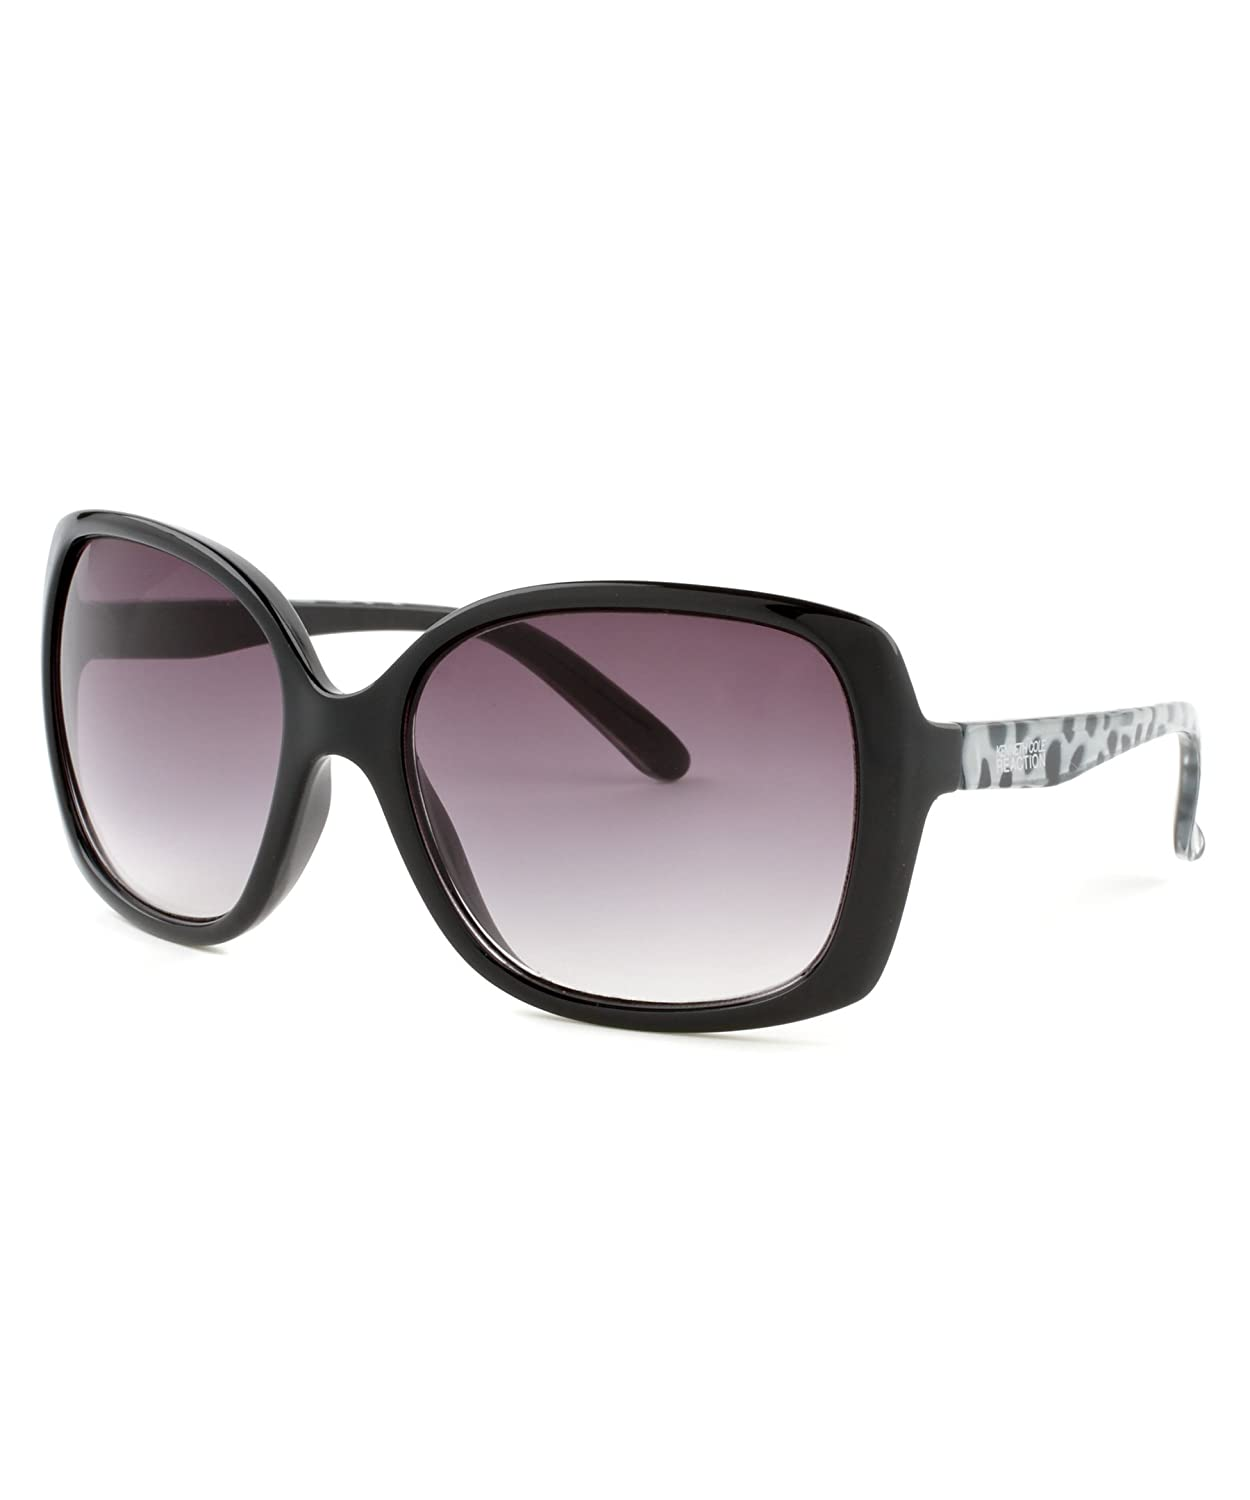 Kenneth Cole Reaction Womens Oversized Fashion Rectangle